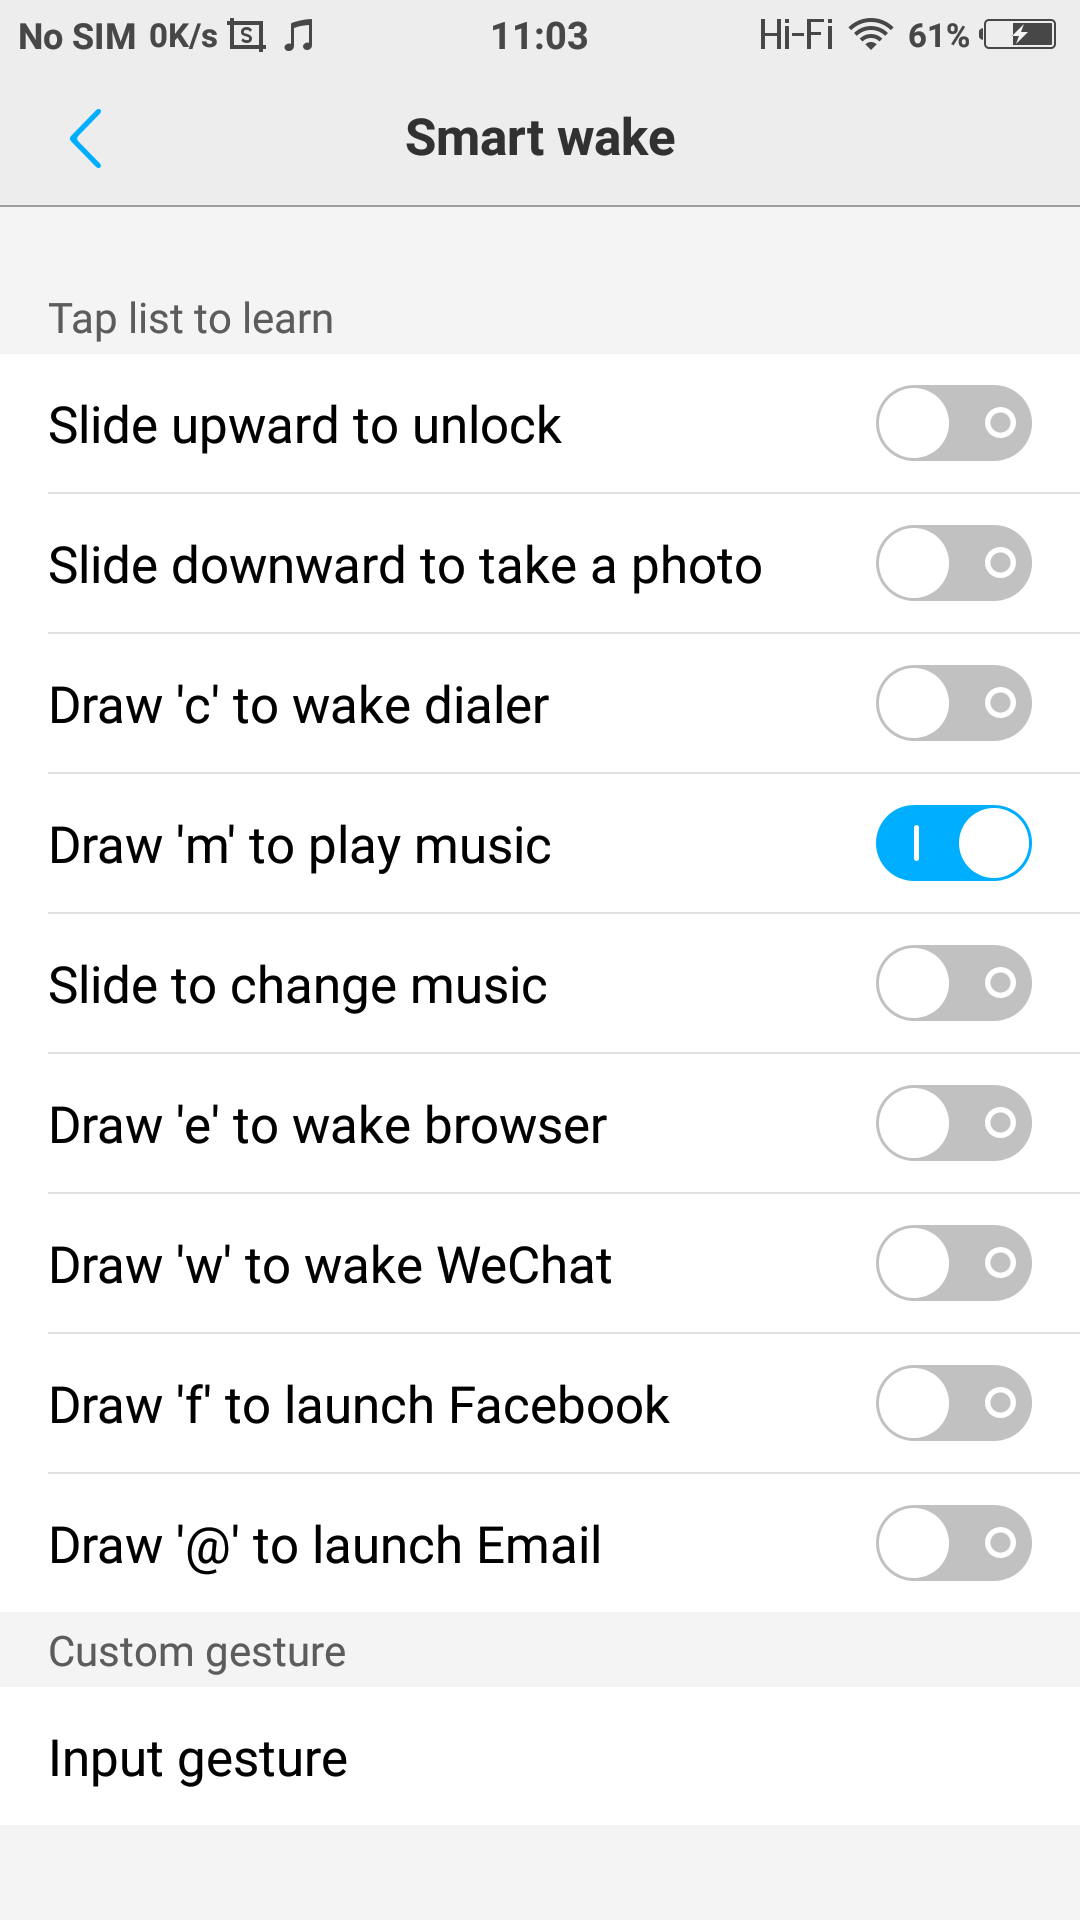 Smart Wake allows you to start apps using gestures, even if the phone is locked.